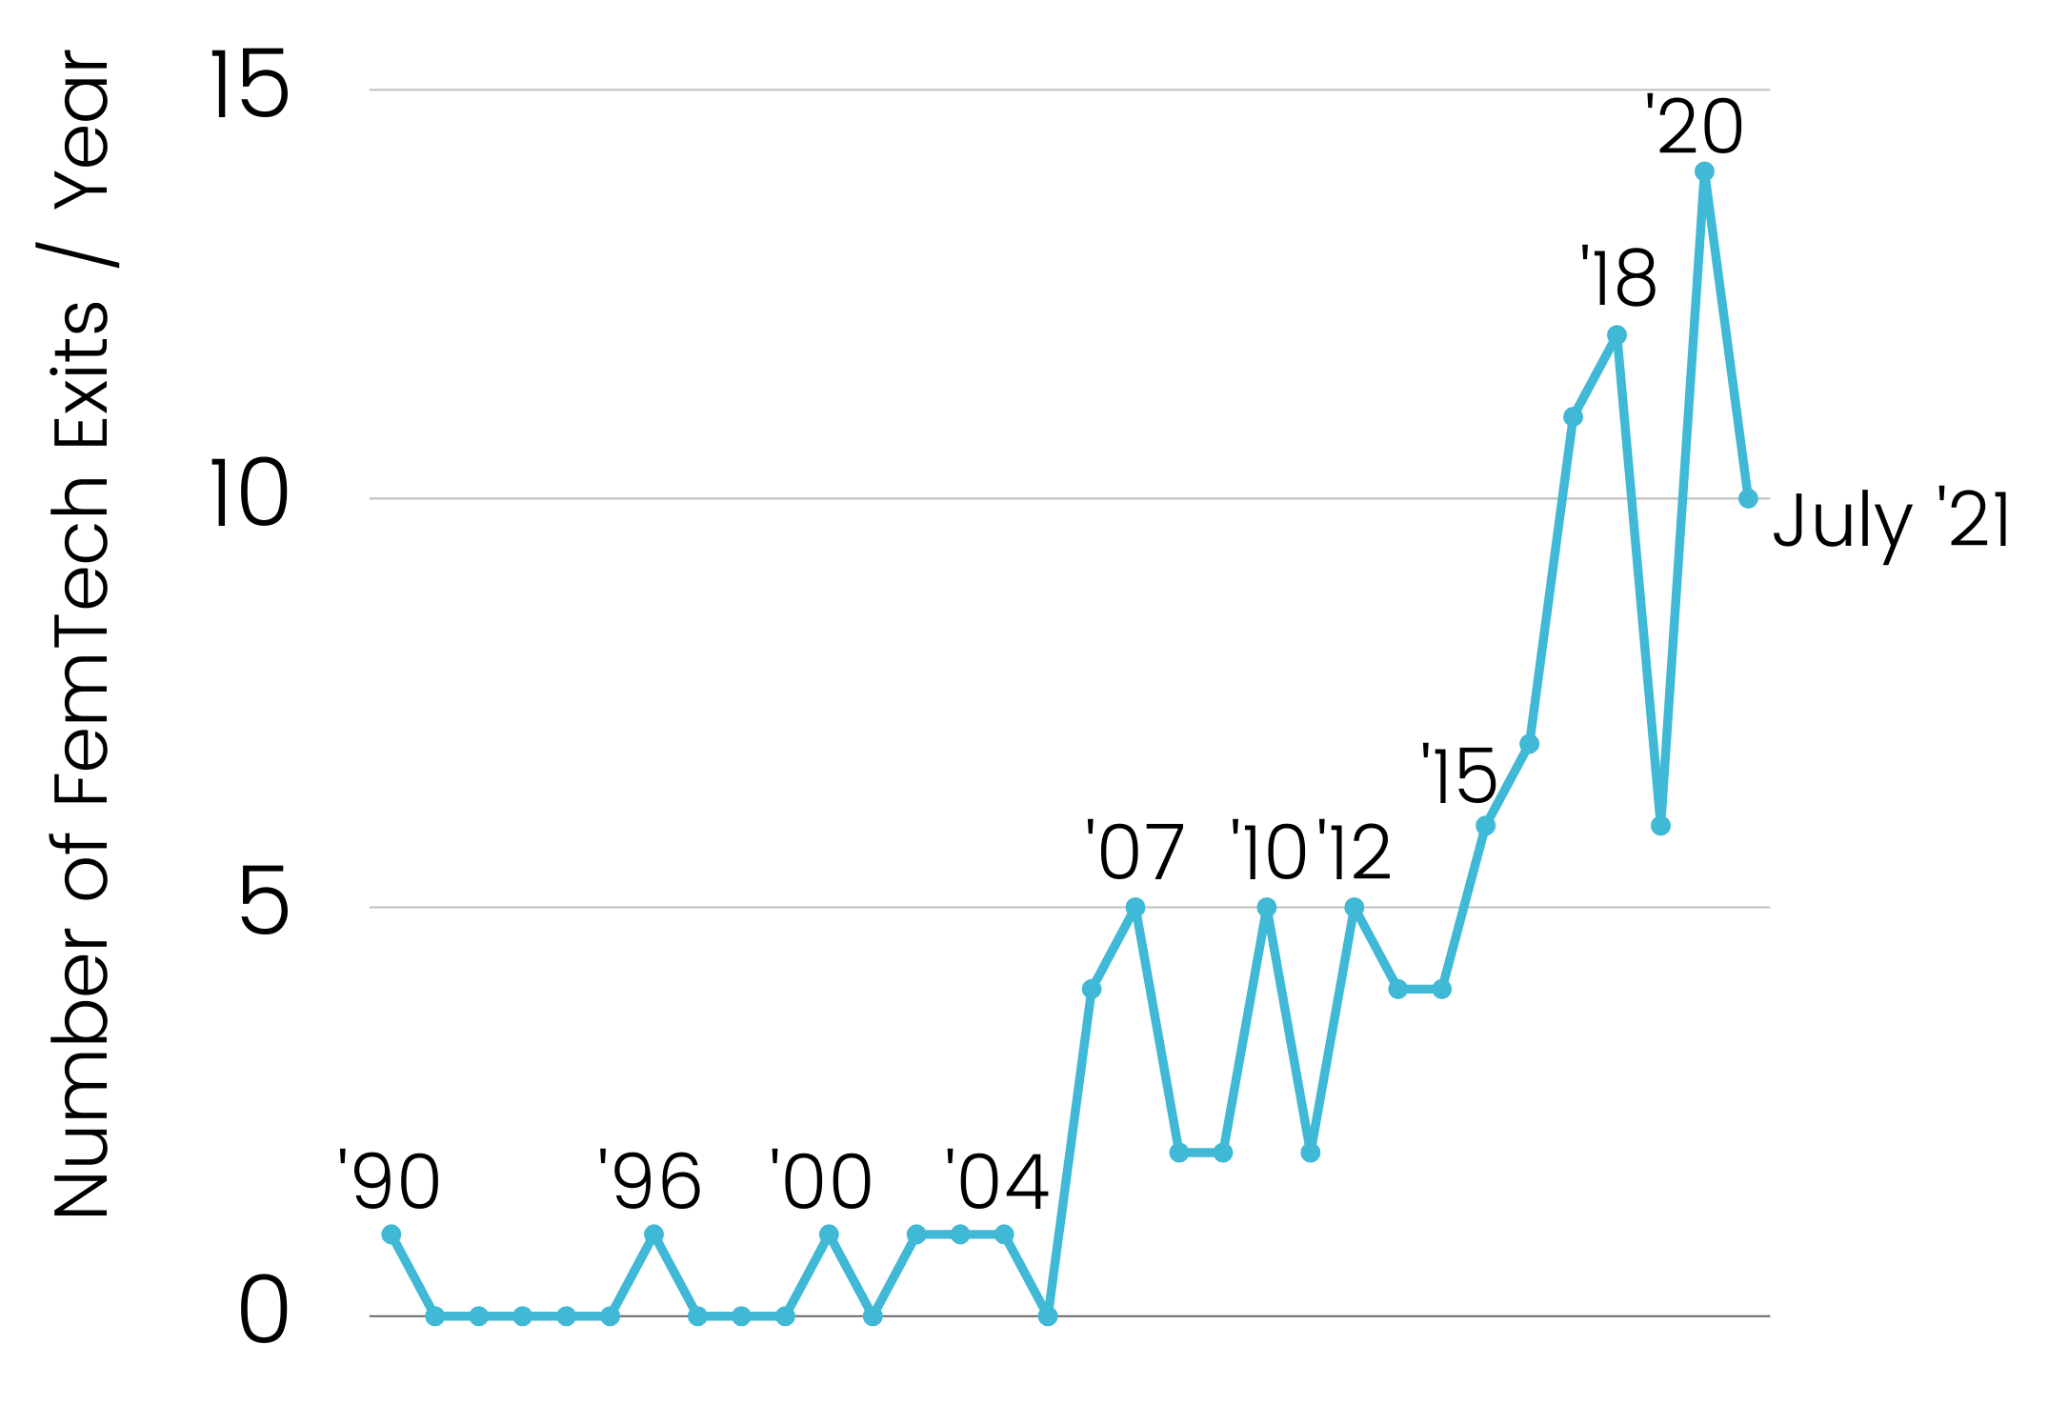 line graph showing number of femtech exits per year from 1990 to 2021